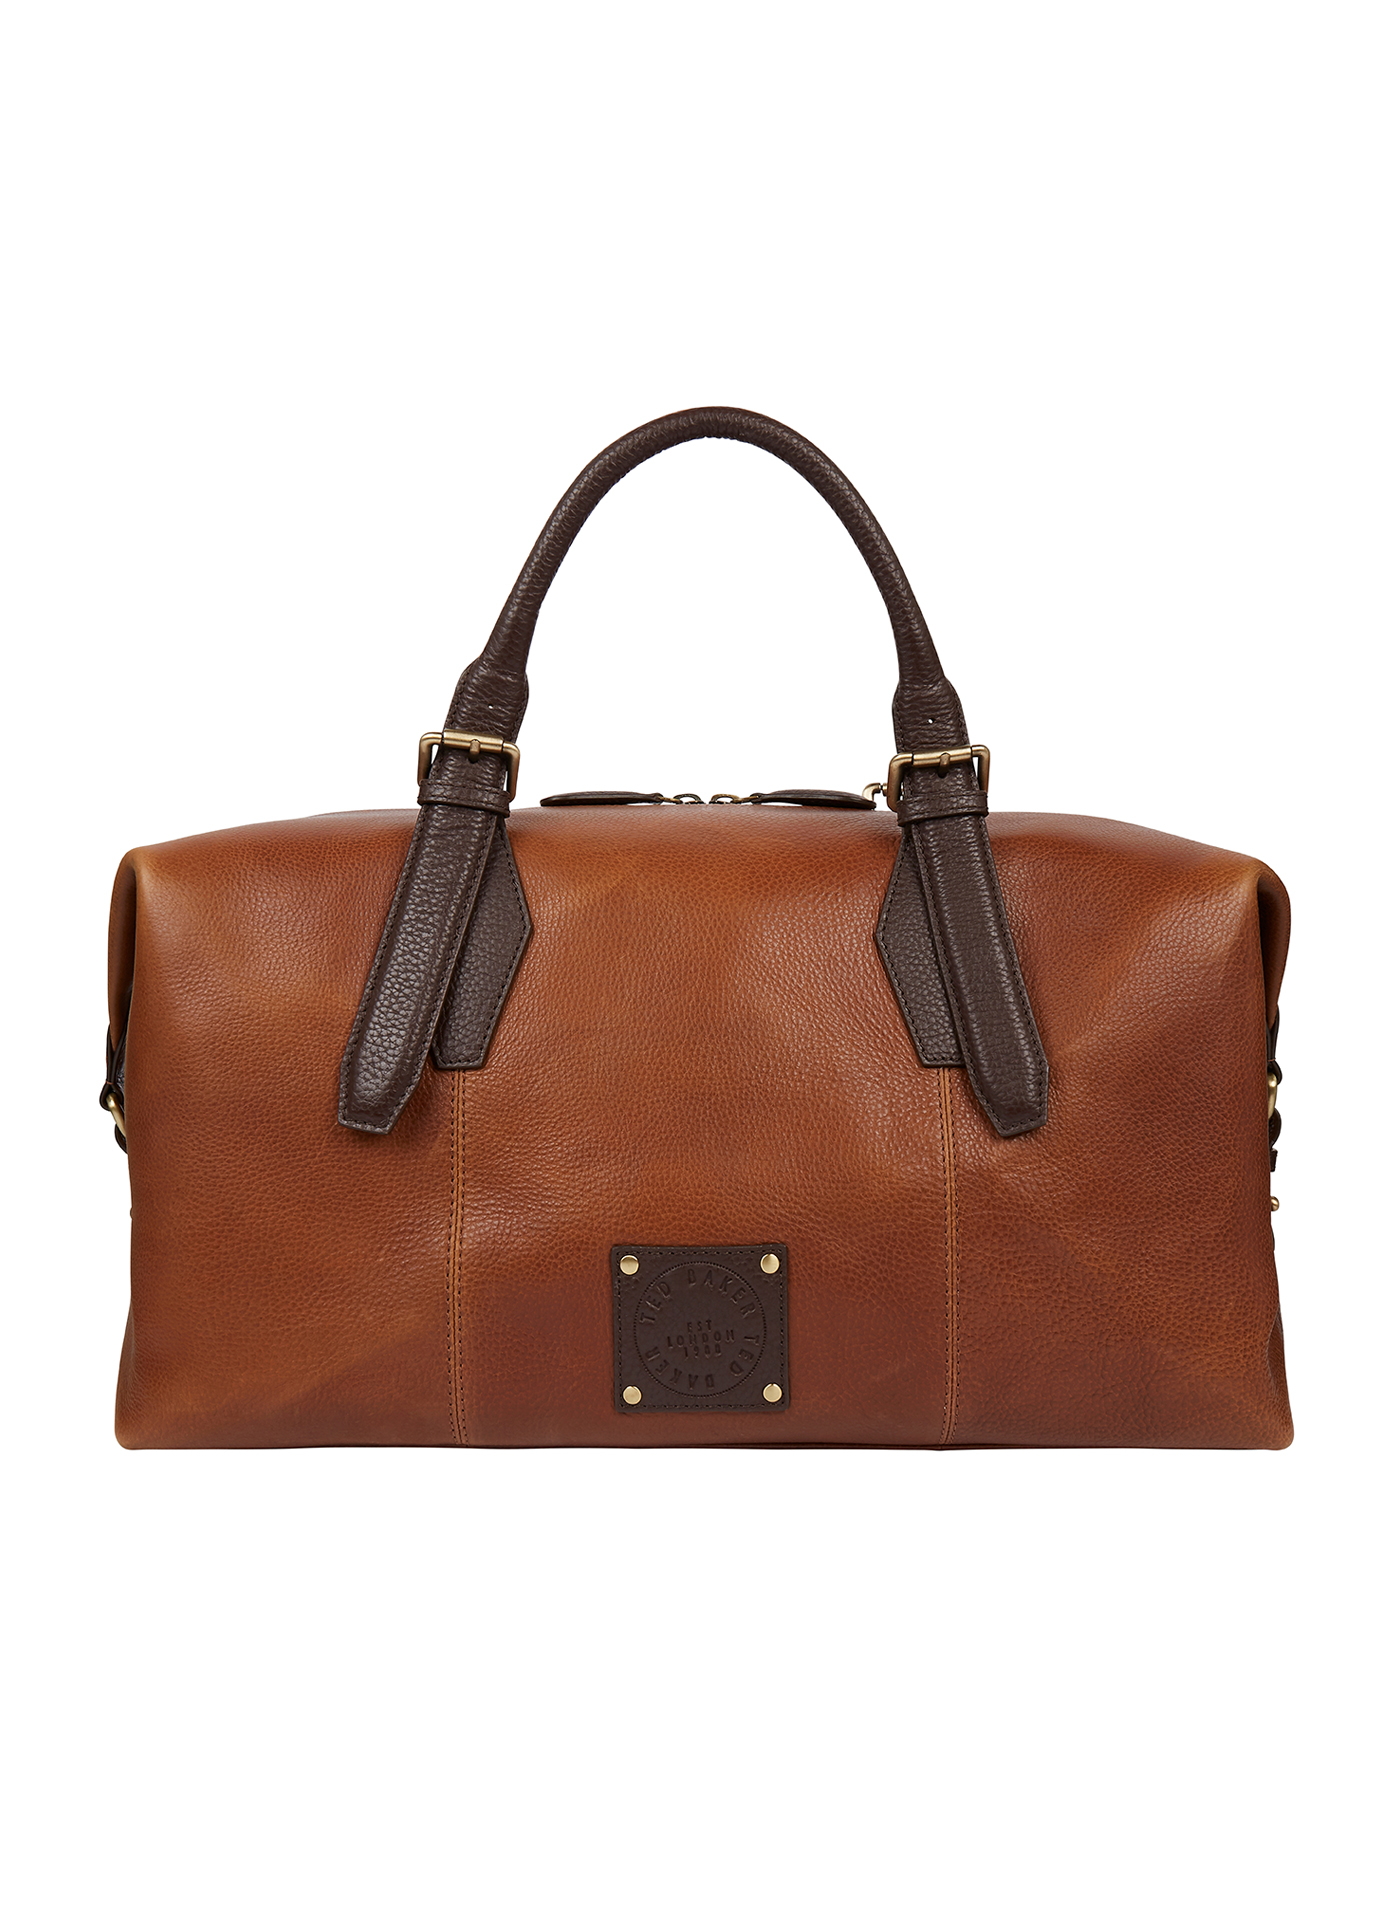 Brown Leather Ted Baker overnight bag